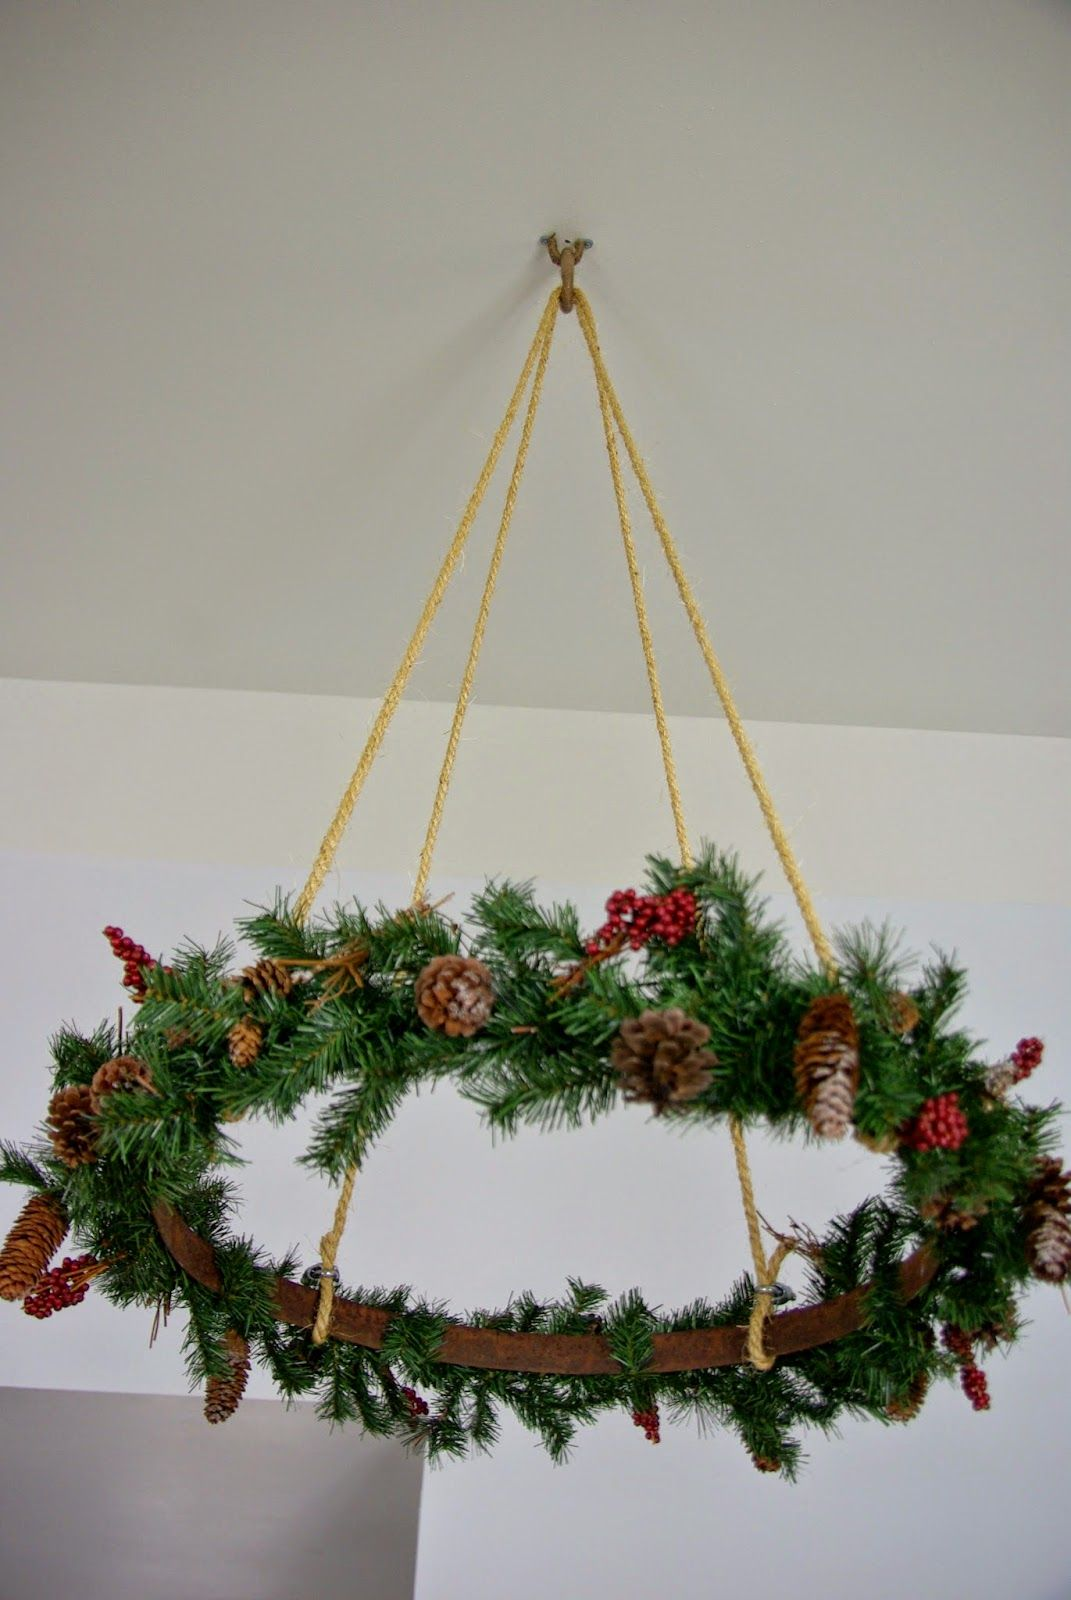 Hanging Christmas Decorations To Make.Our House Now A Home Celing Hanging Christmas Wreath